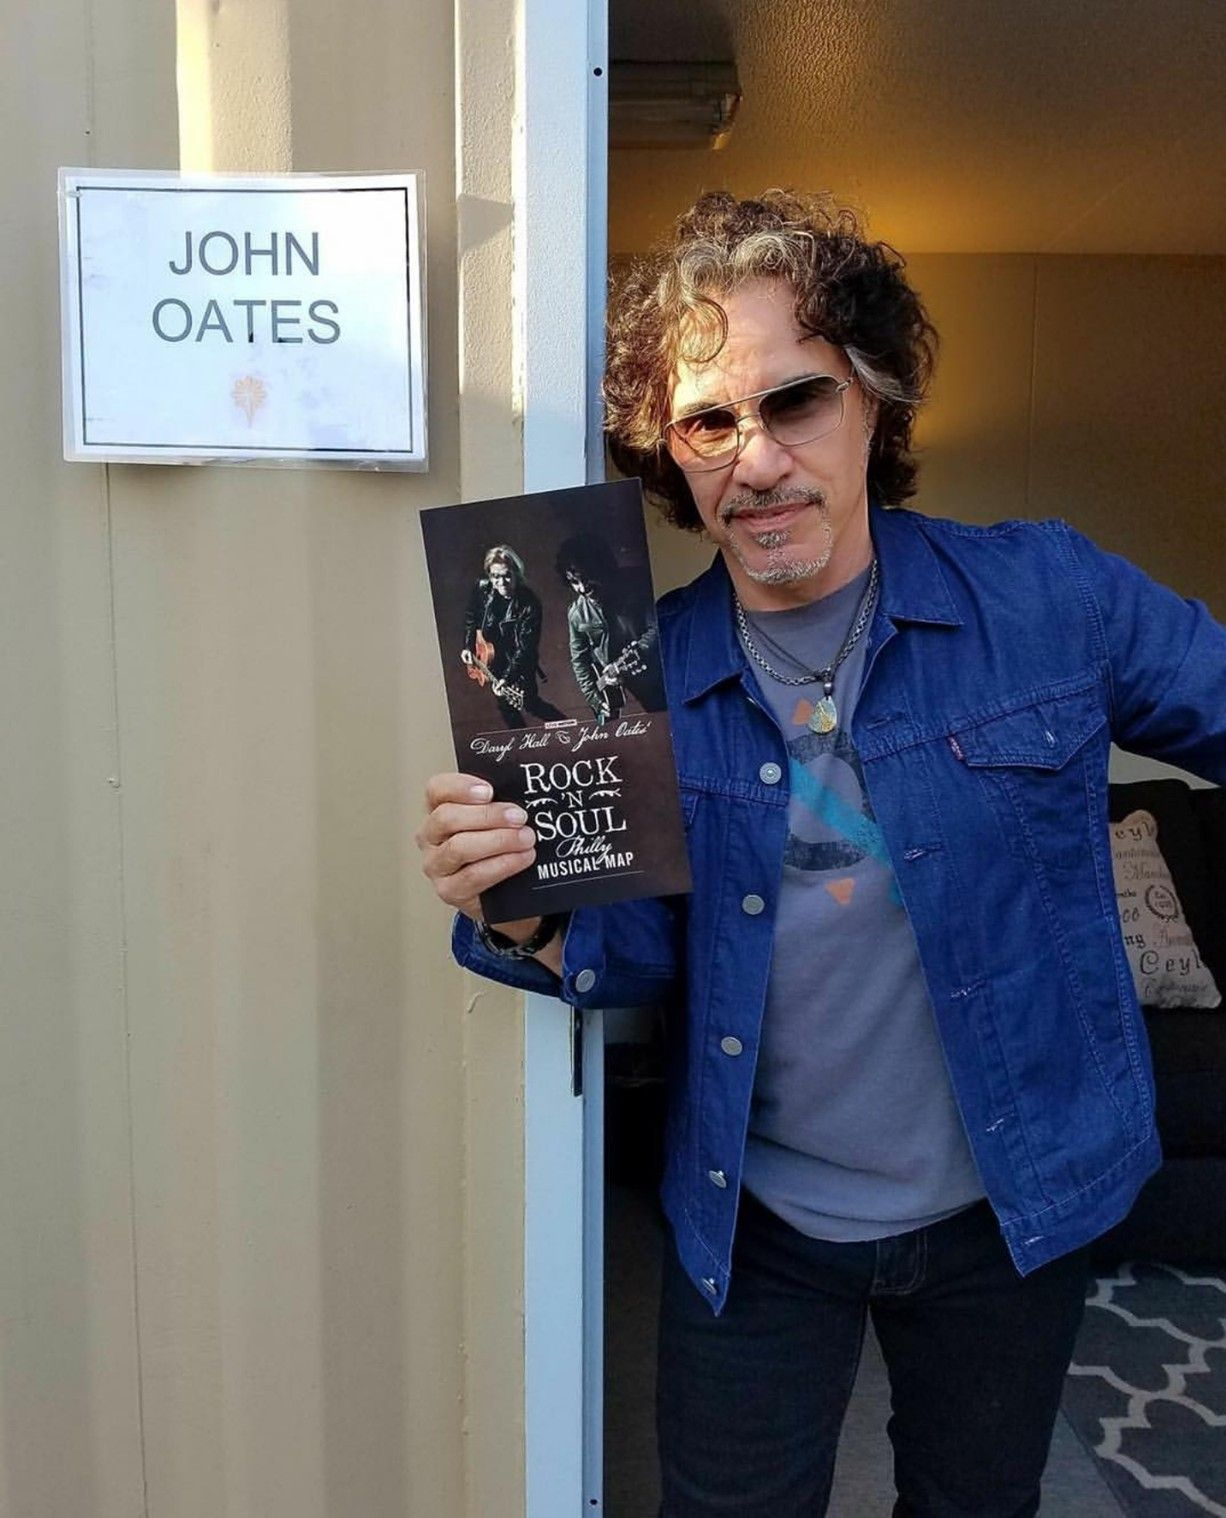 John Oates from Hall & Oates says hes slept with over